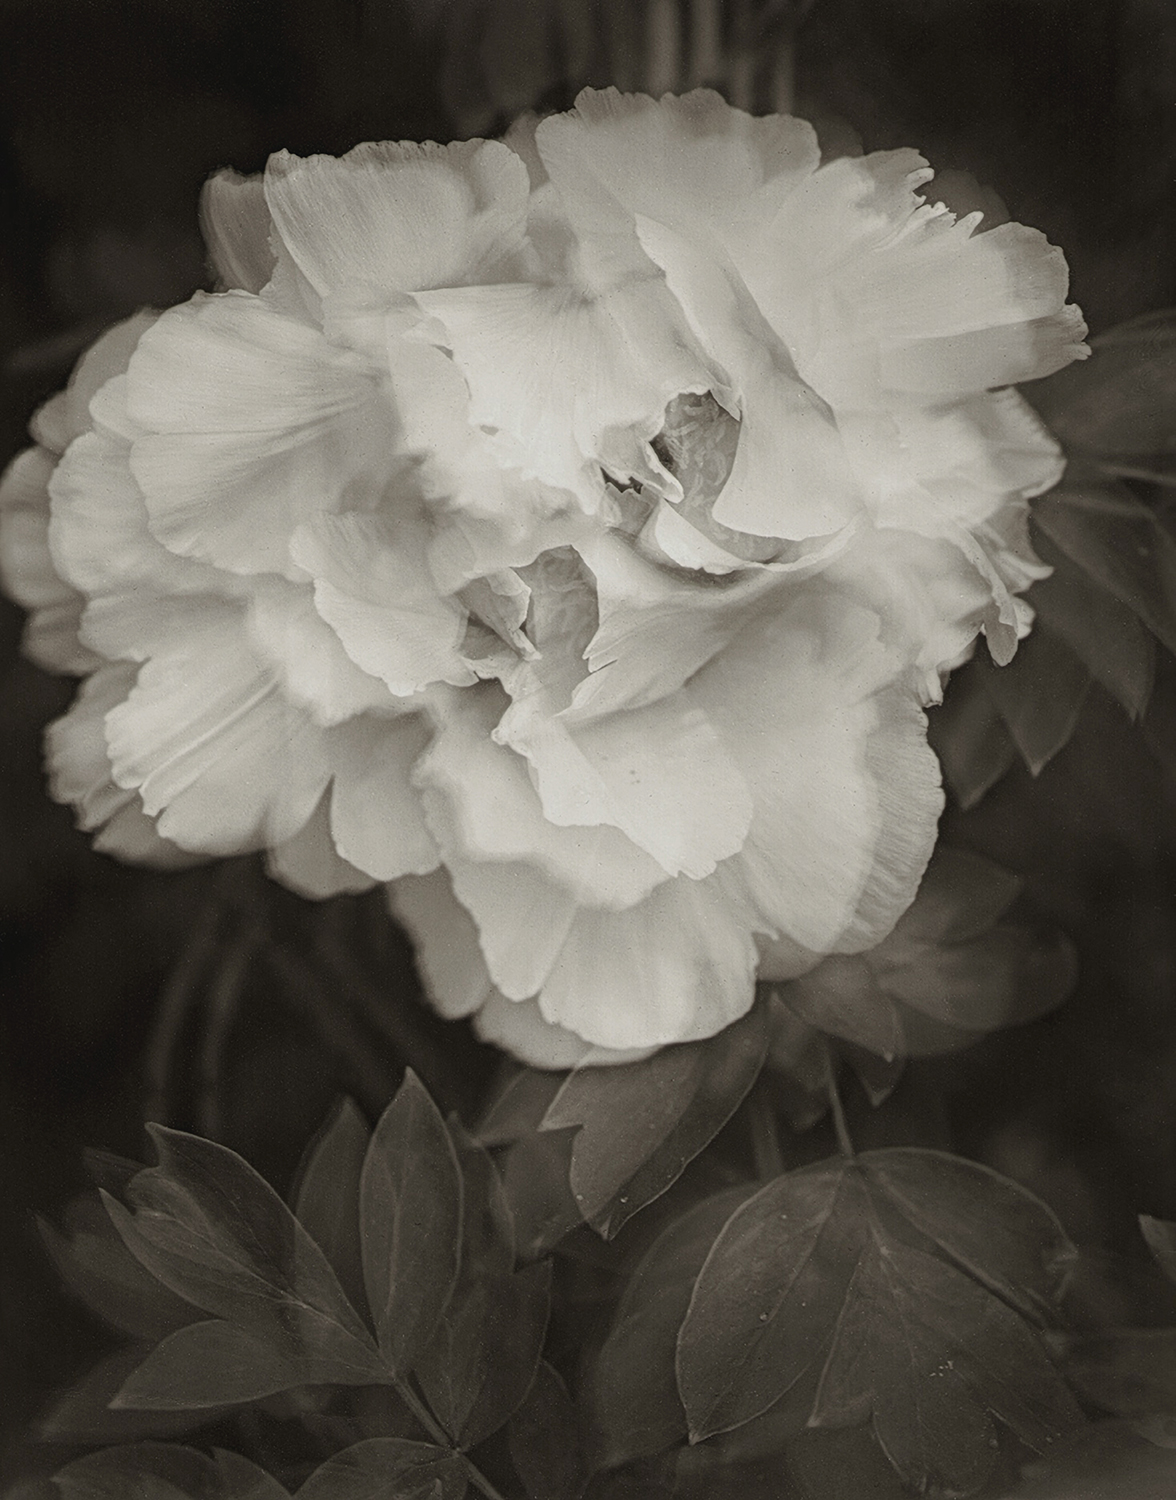 The Spirit of My Friend, Paeonia Rockii, Linwood Gardens, 2007